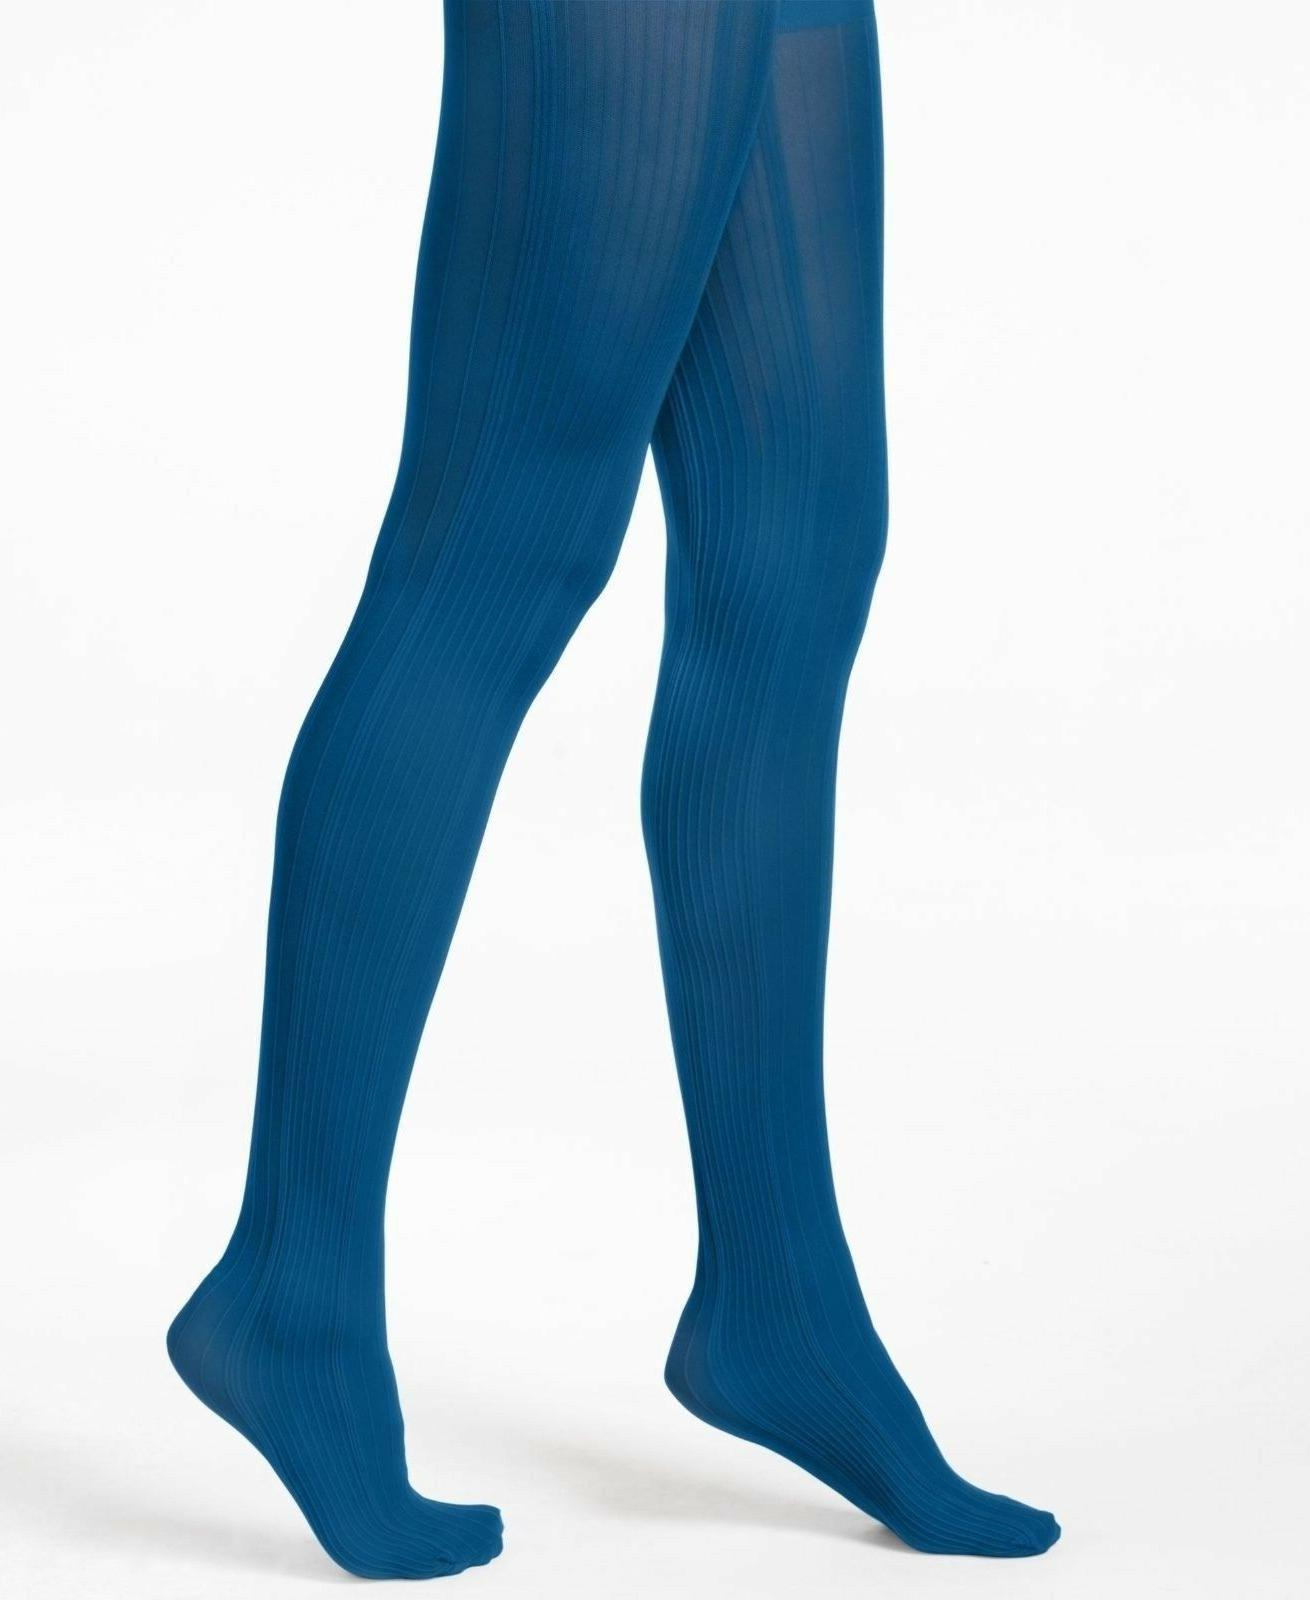 tights variegated control top catalina blue size